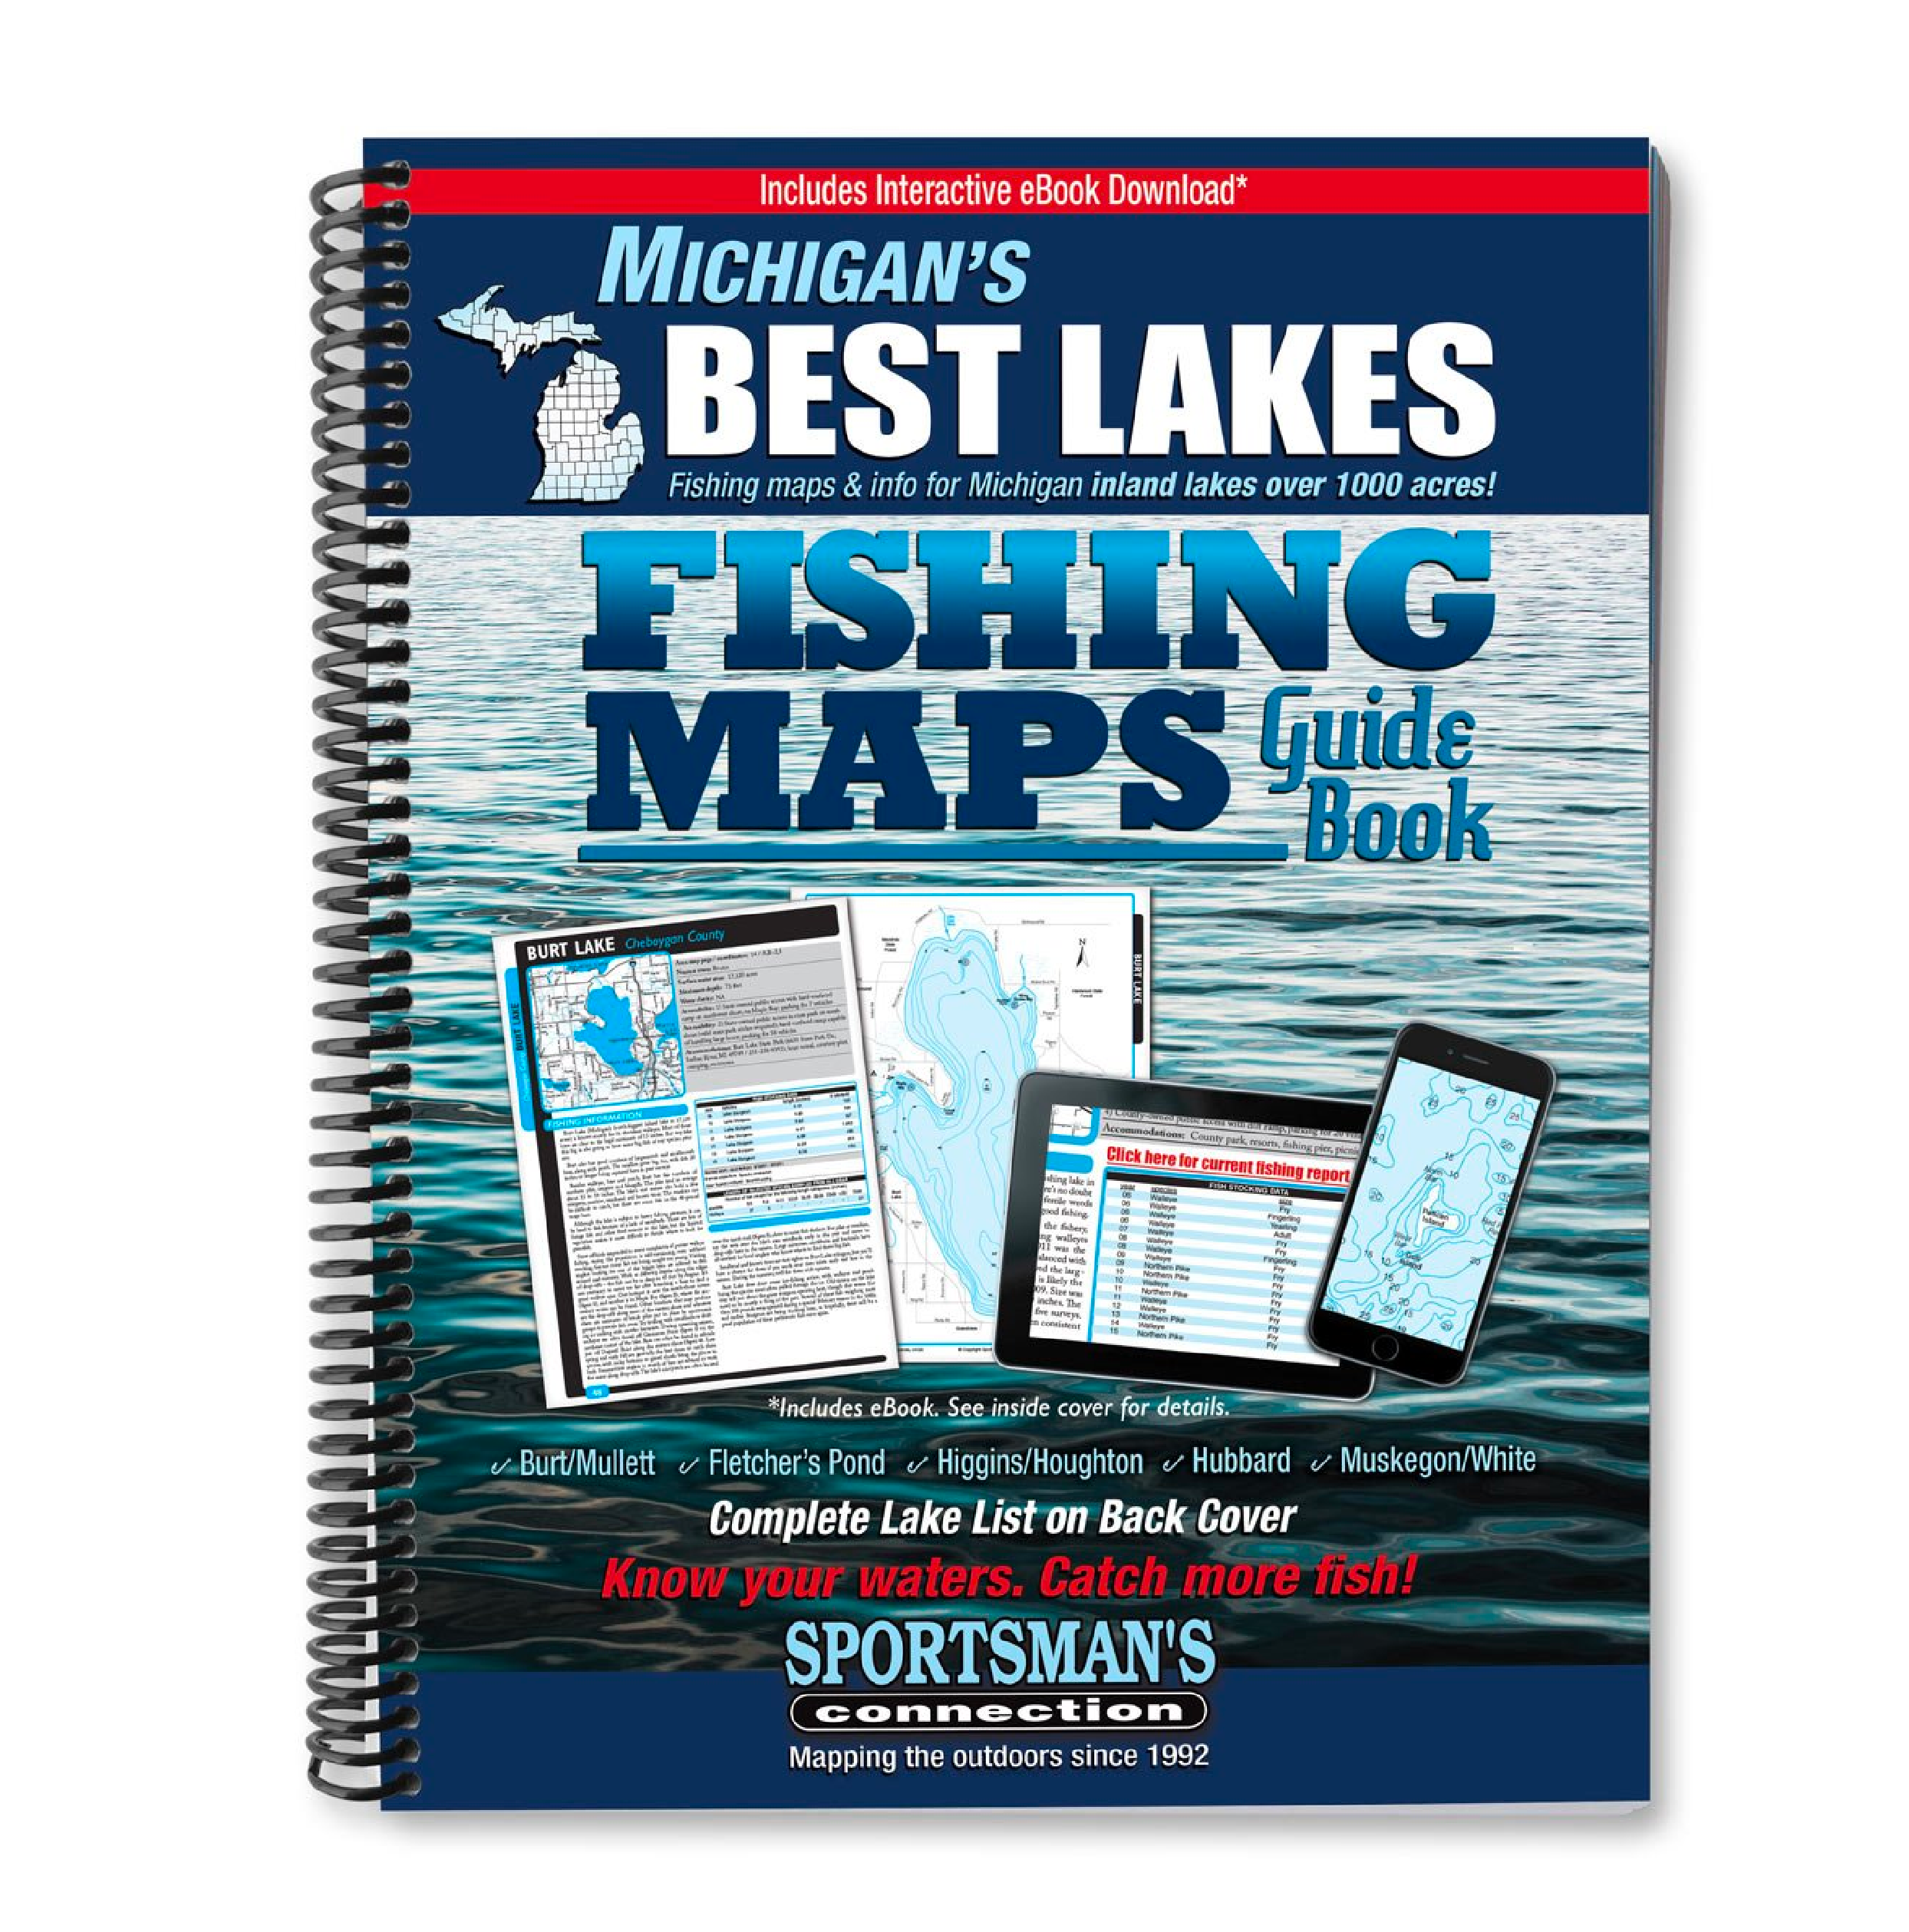 Michigan's Best Lakes